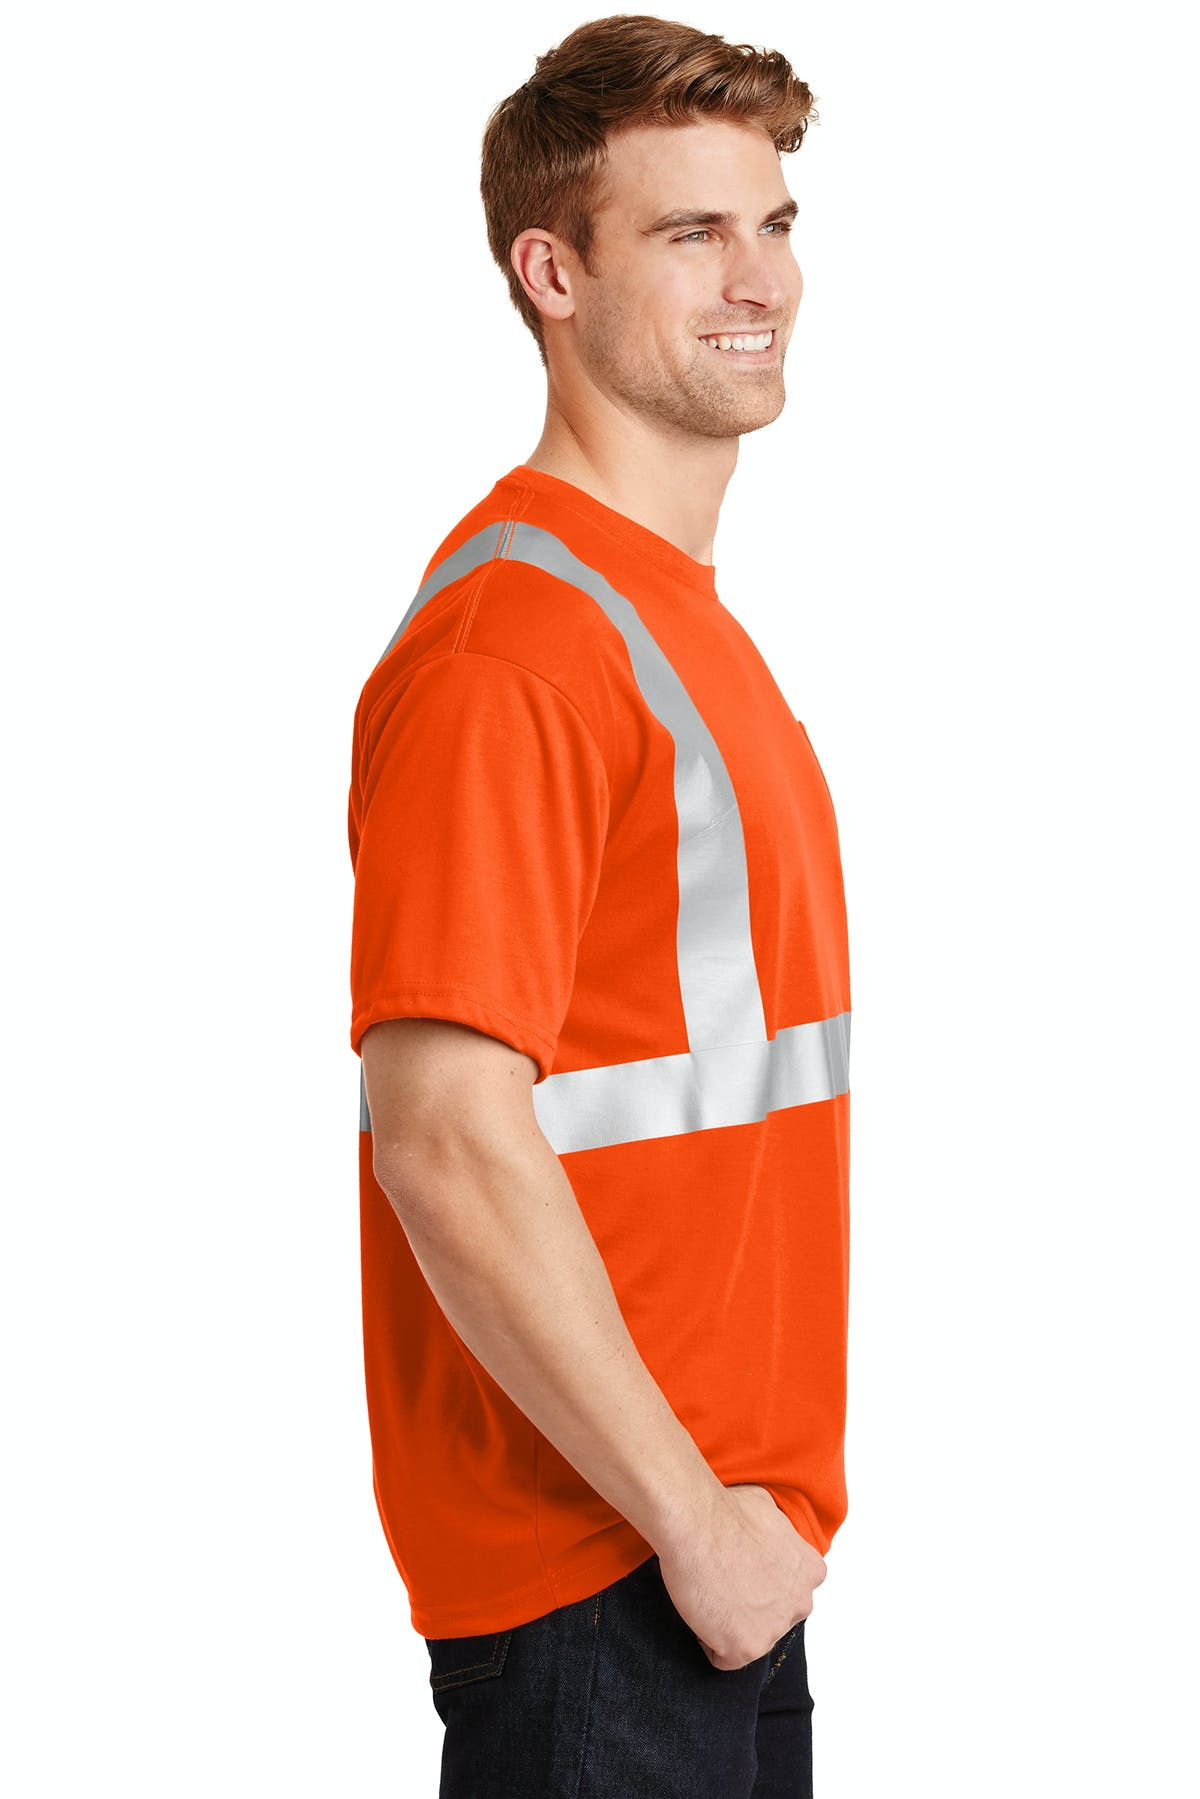 CornerStone® - ANSI 107 Class 2 Safety T-Shirt - sold by PRINT CITY GRAPHICS, INC